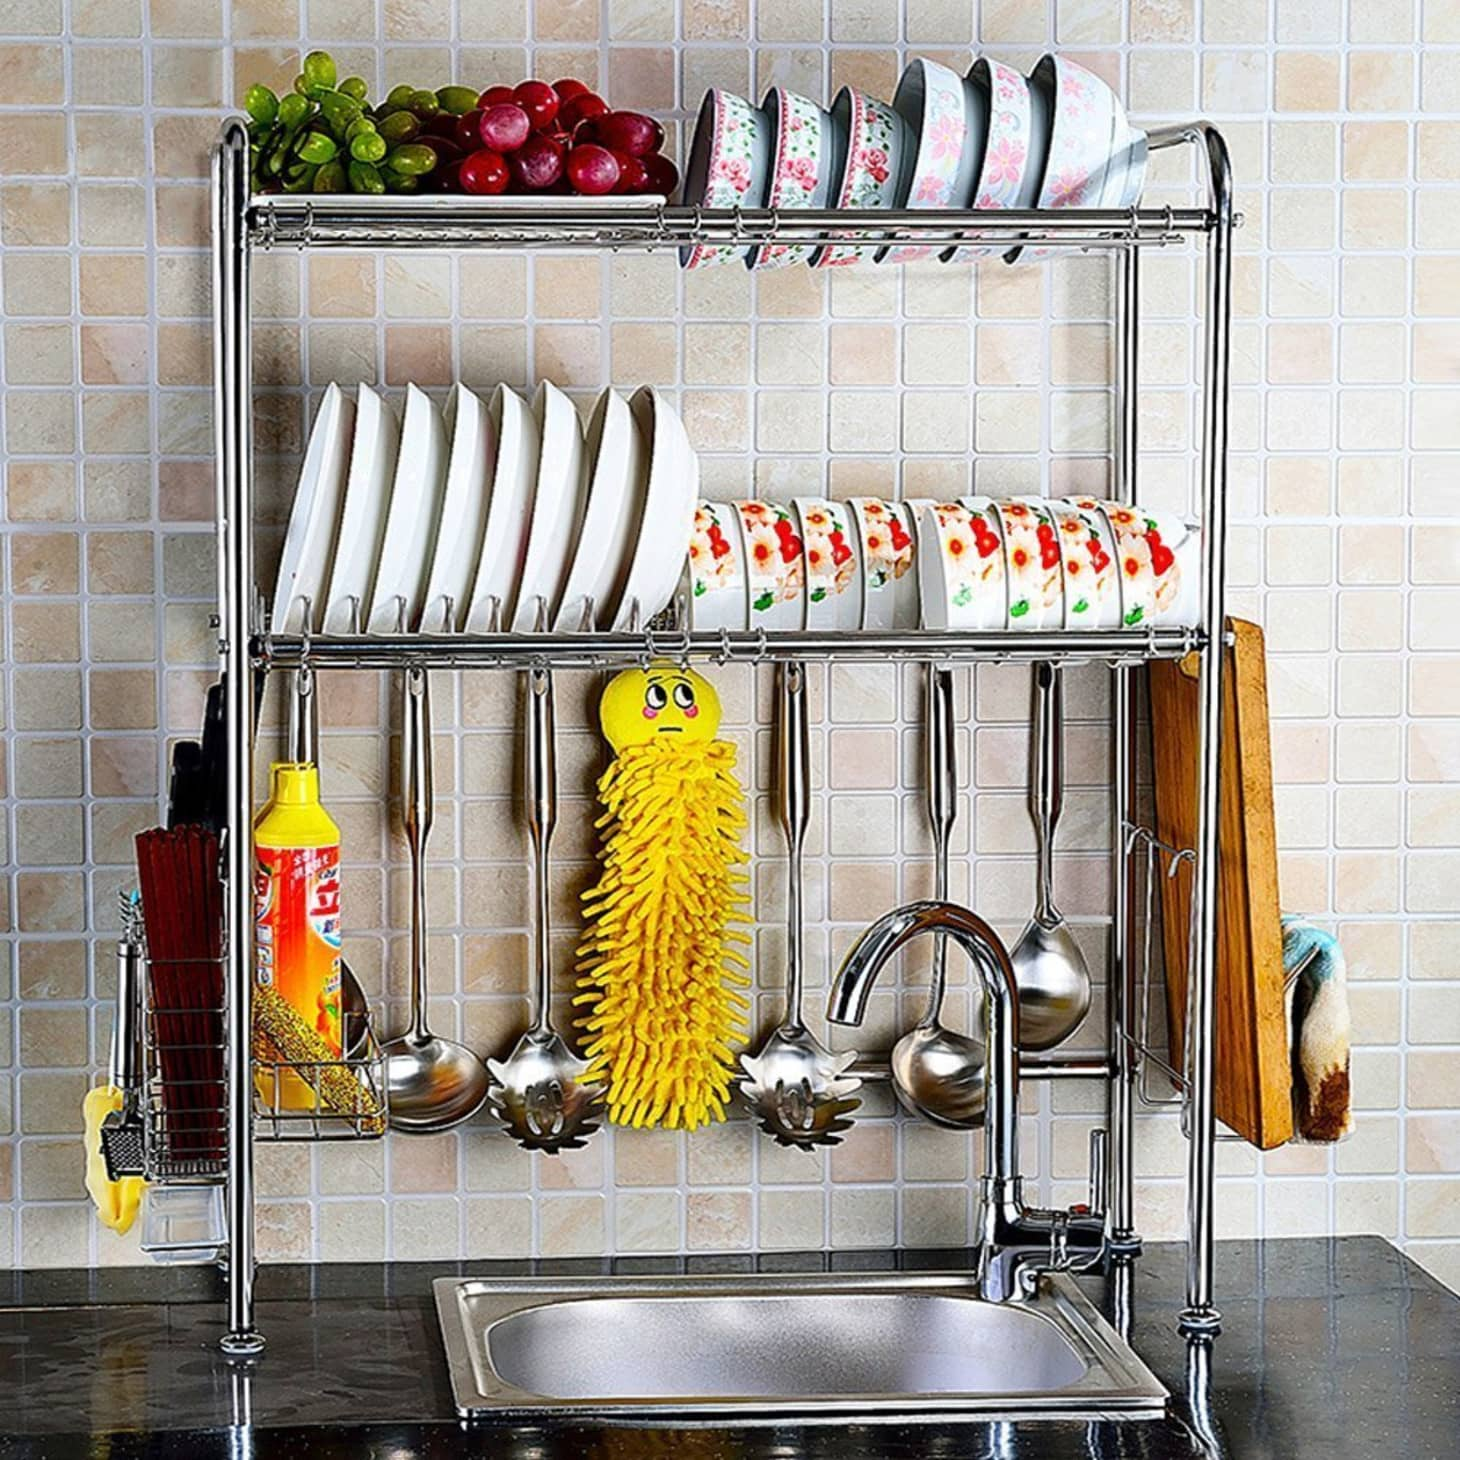 569251de3517 Finnish Dish Drying Closets | Apartment Therapy